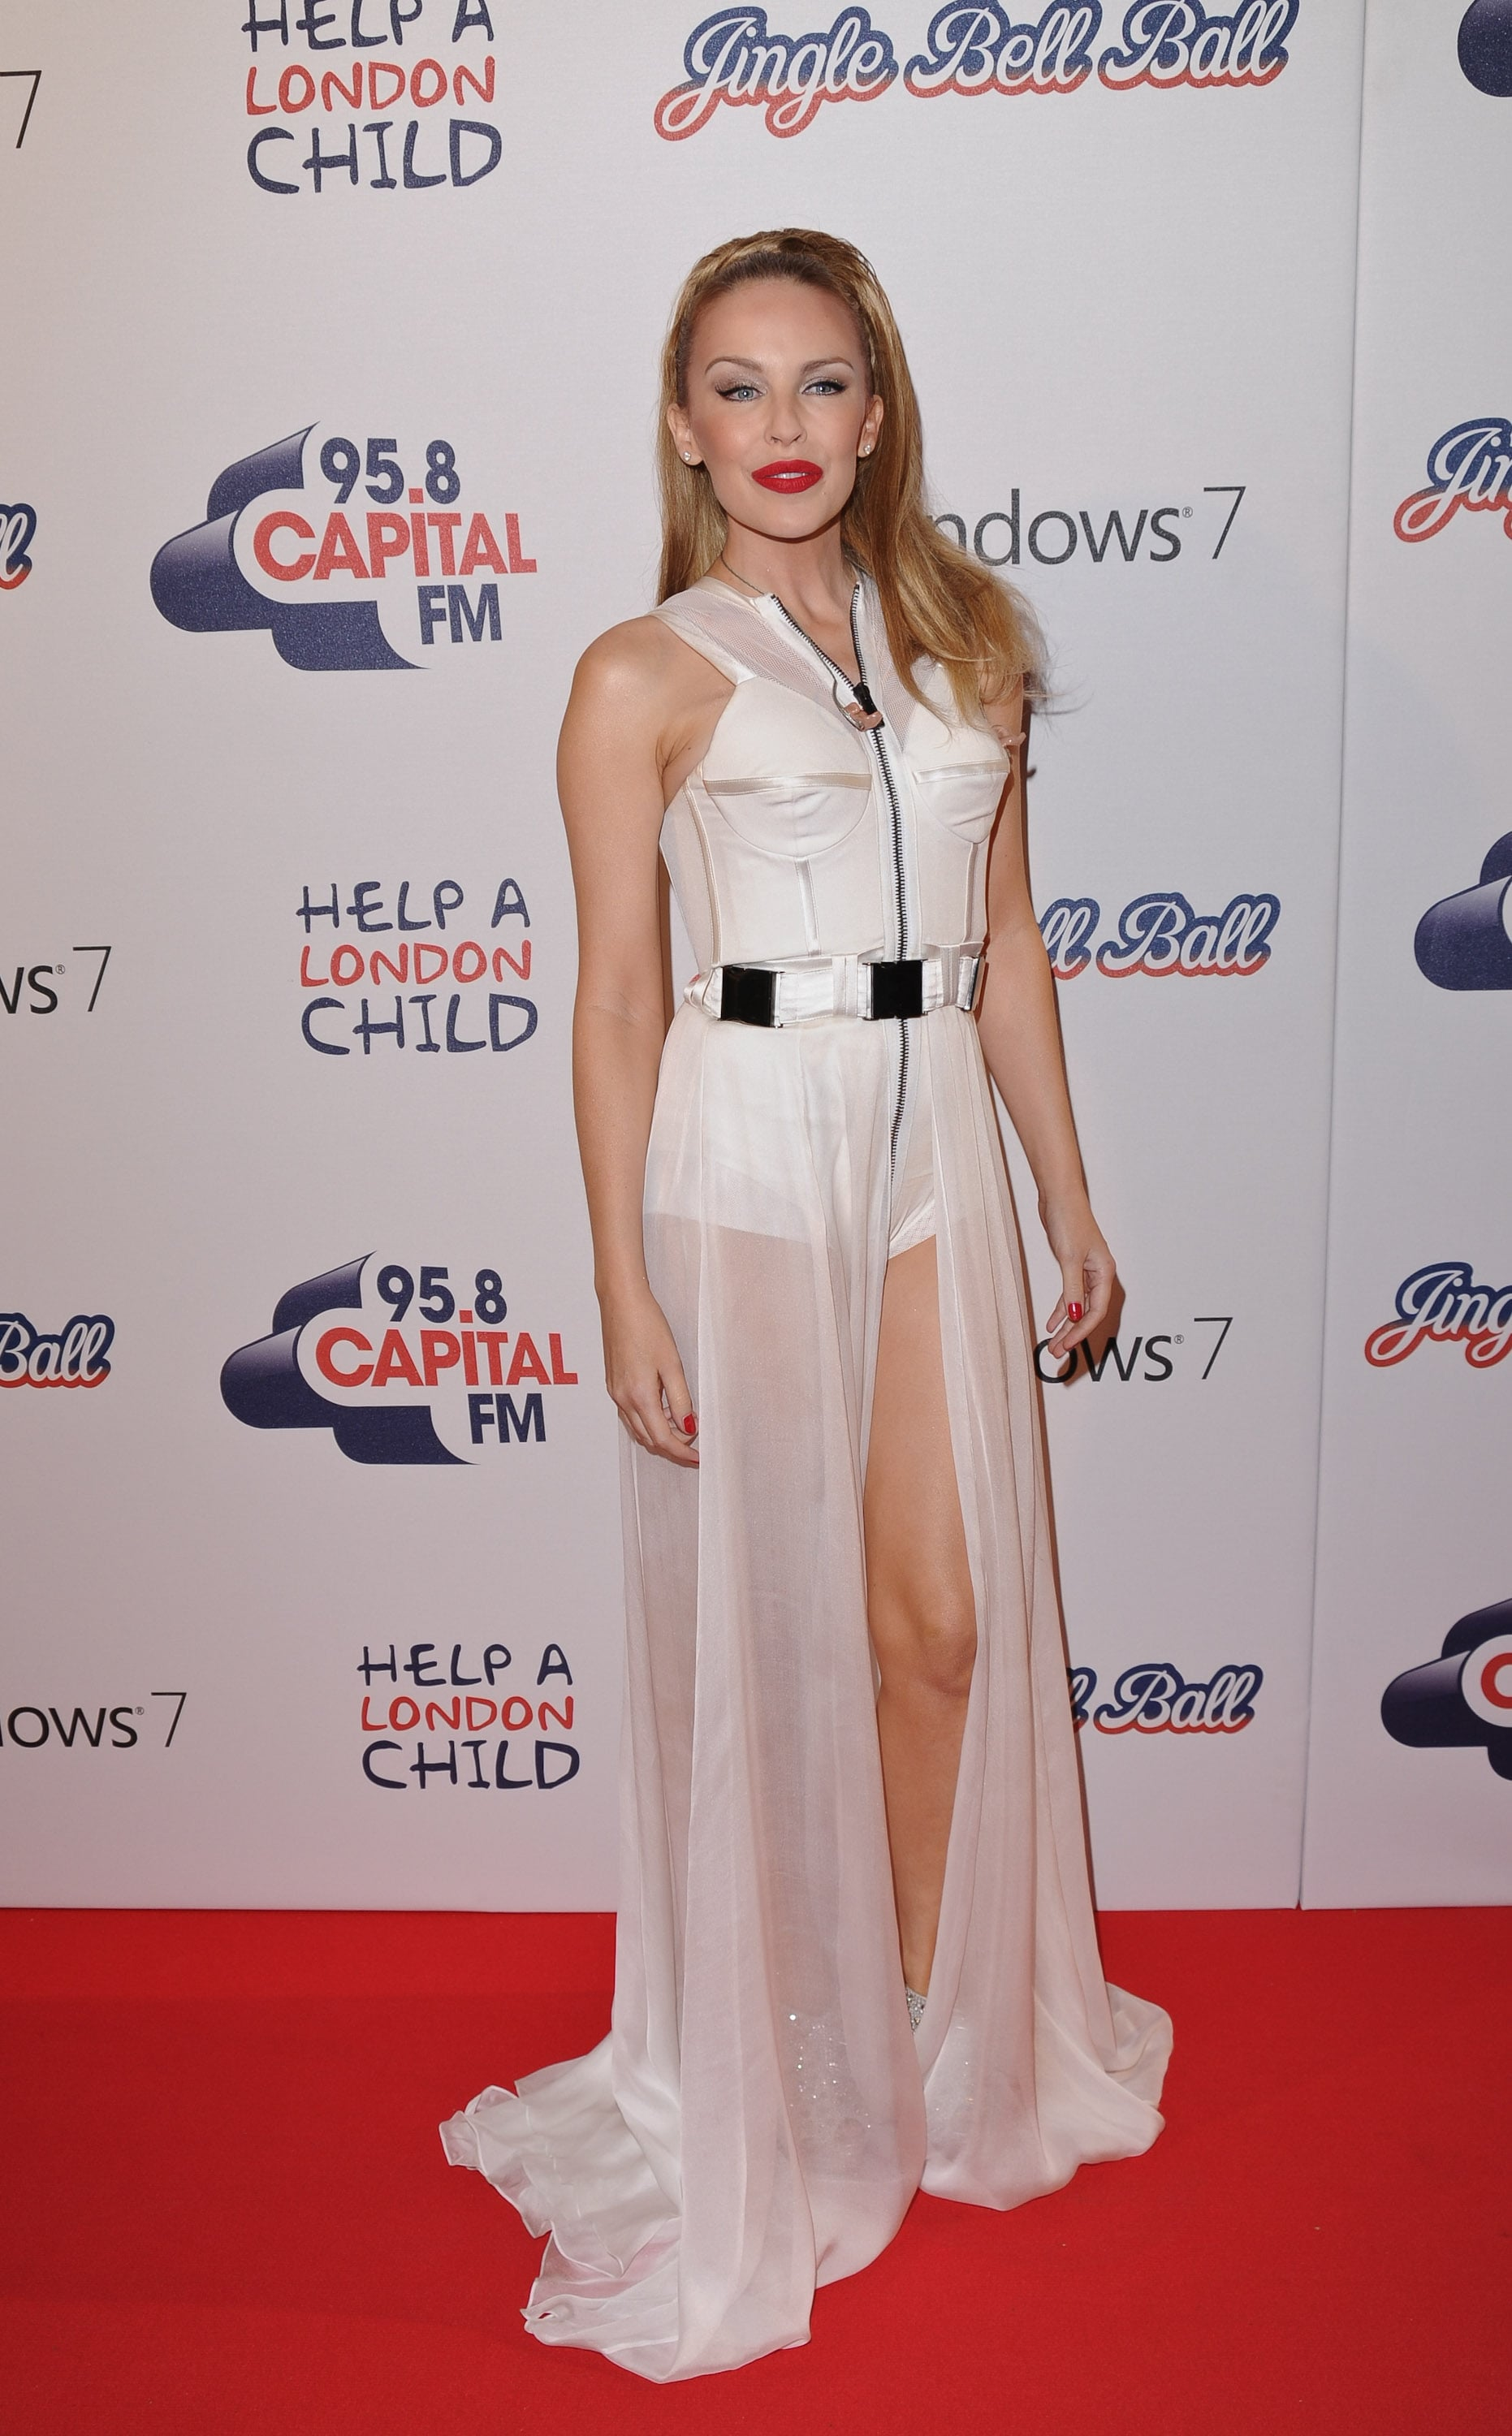 Pictures-from-Jingle-Bell-Ball-2010-Lond